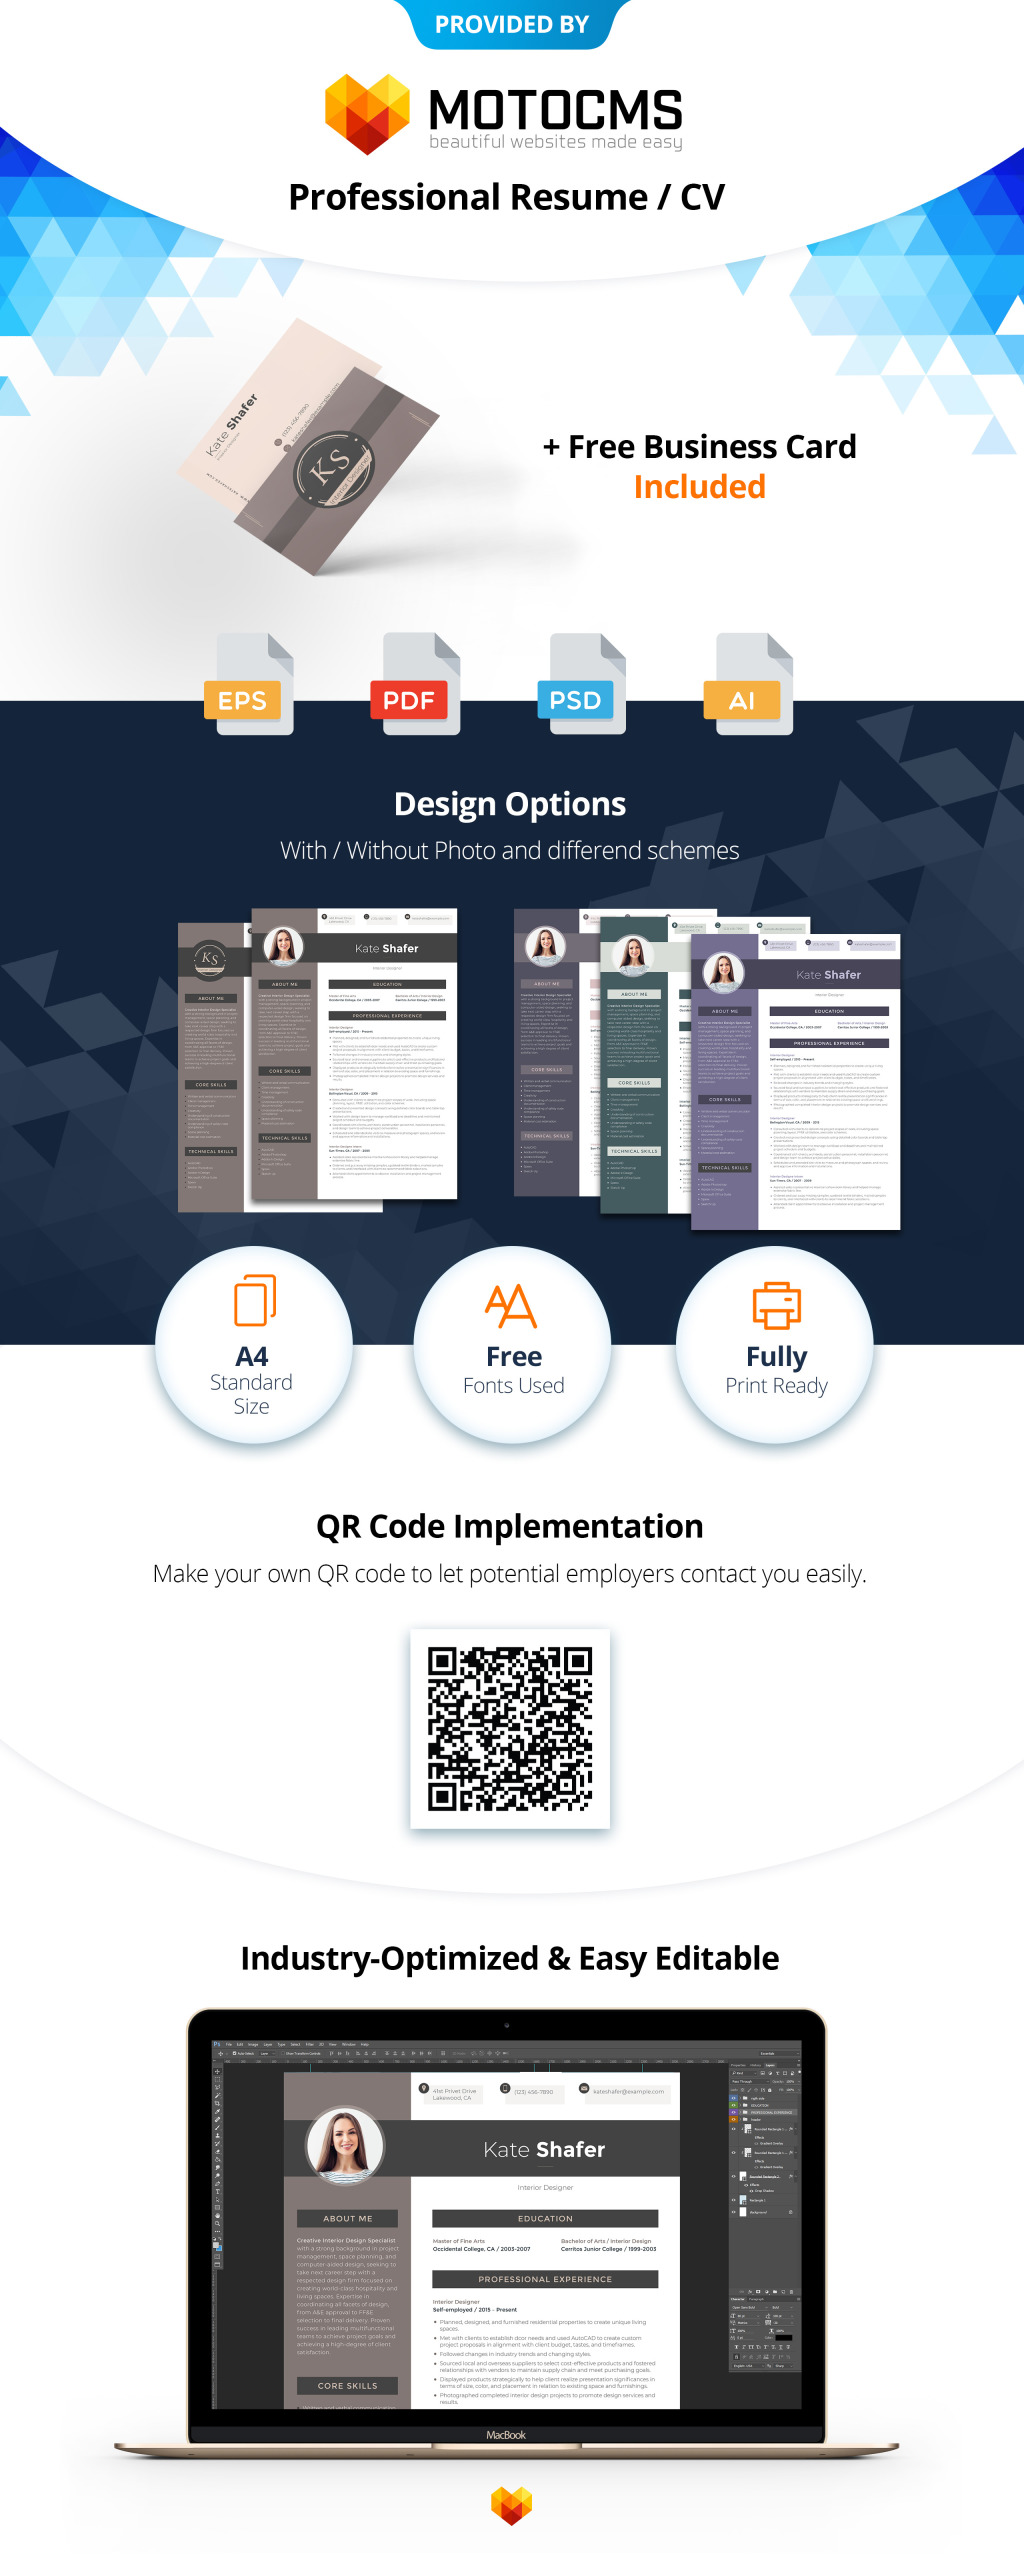 Interior Designer CV Template Will Be Especially Useful To Everyone Related Design And Decor Creative Stylists Home Decorators Furniture Renovation